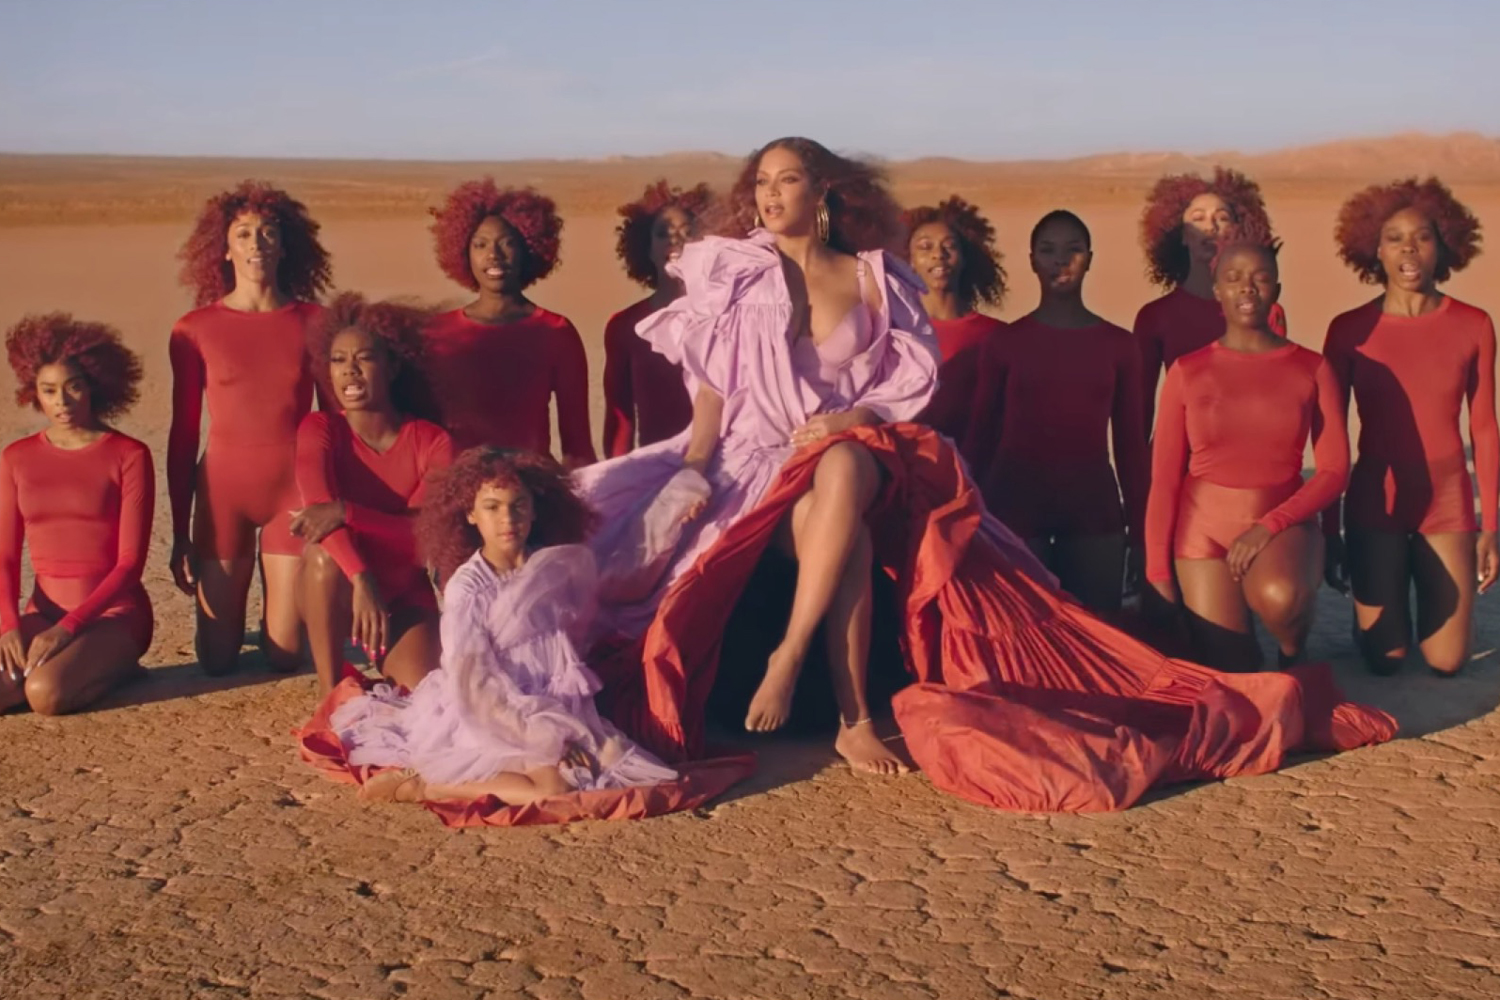 Beyoncé Releases Double Music Video for 'Lion King' Songs